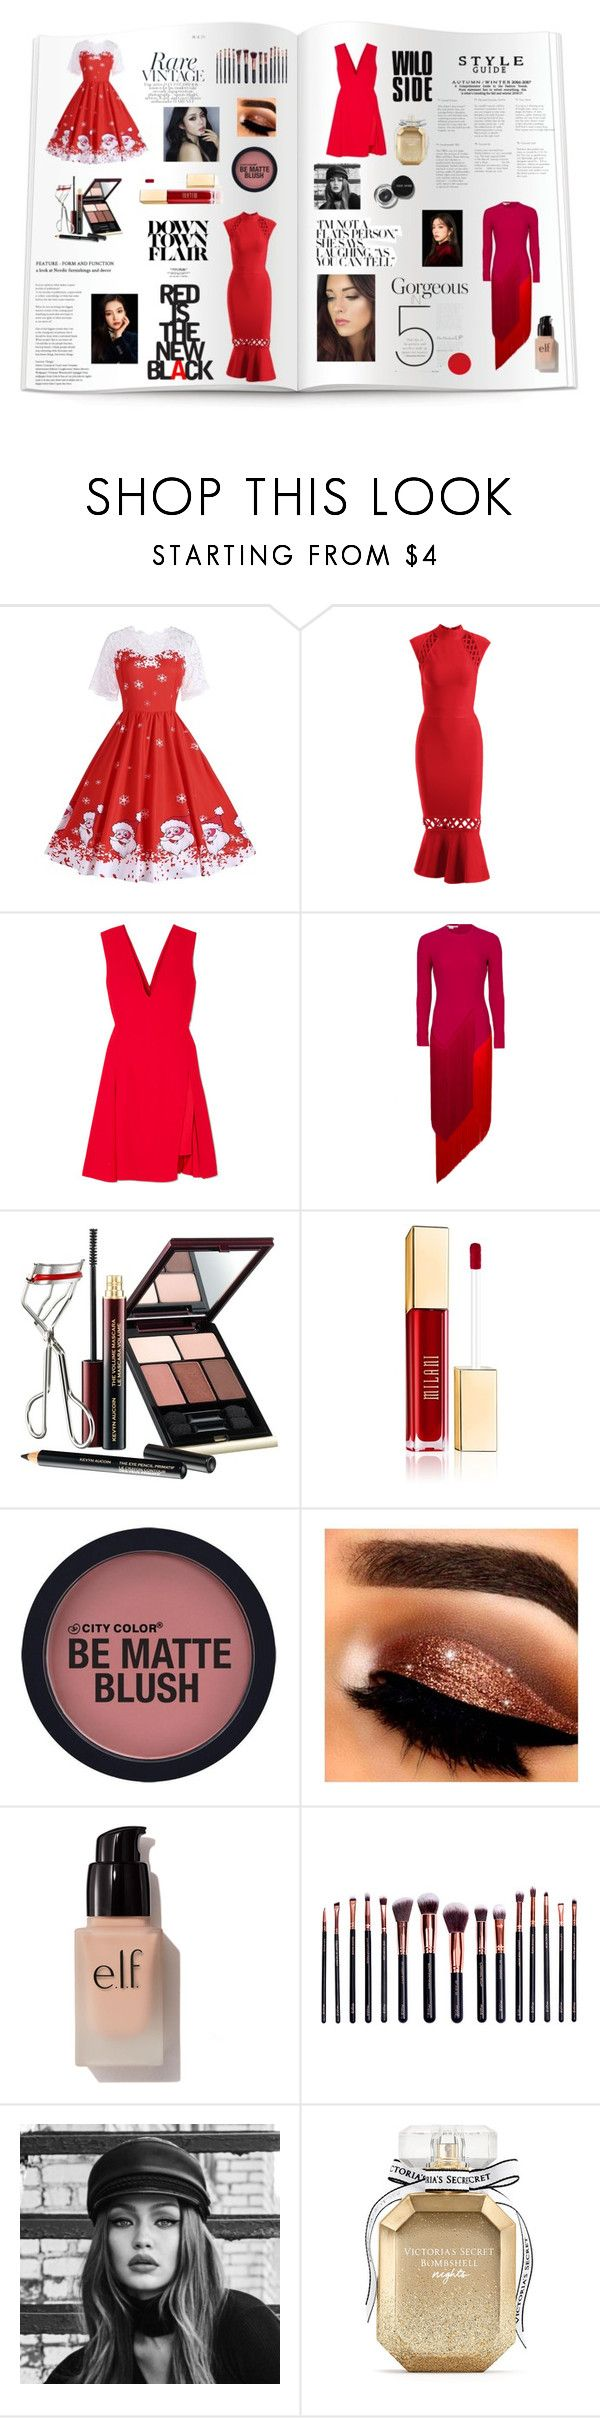 """""""Christmas Catalog"""" by celestialstyles7408 ❤ liked on Polyvore featuring Versace, STELLA McCARTNEY, Kevyn Aucoin, e.l.f., M.O.T.D Cosmetics, Maybelline, Victoria's Secret and Bobbi Brown Cosmetics"""